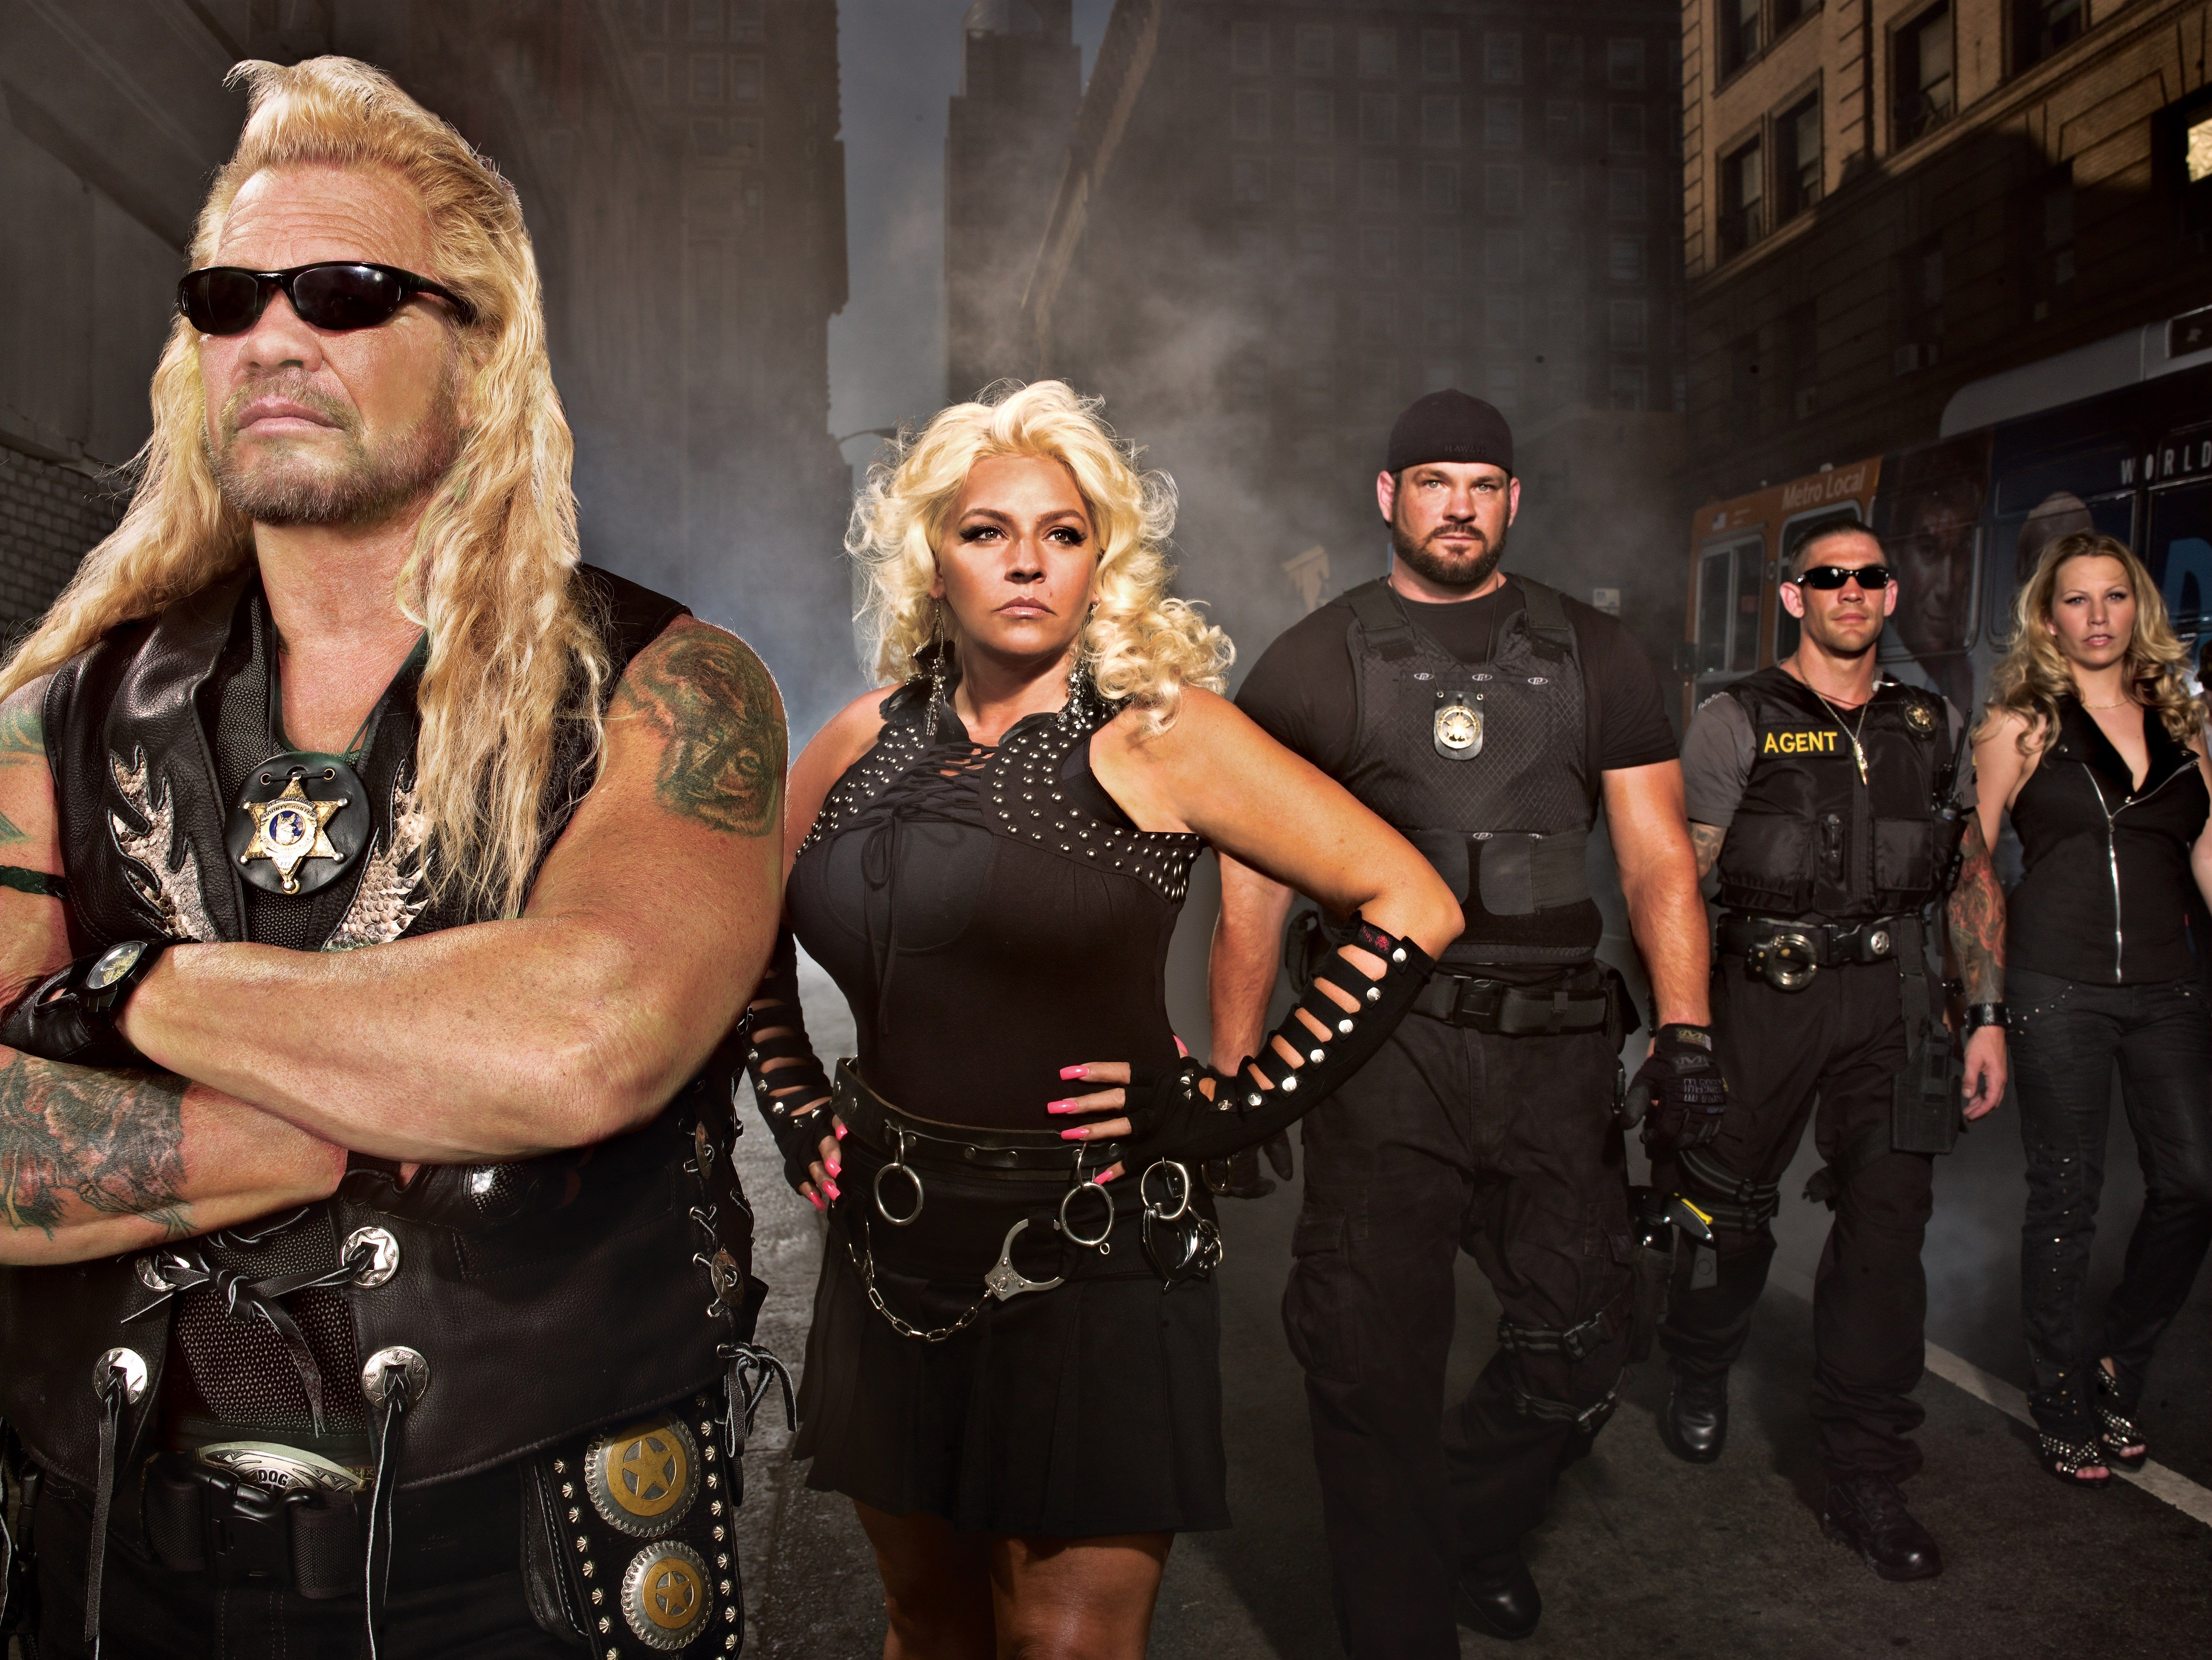 5792x4347 Full Size Dog The Bounty Hunter Dog The Bounty Hunter Bounty Hunter Hunter Dog